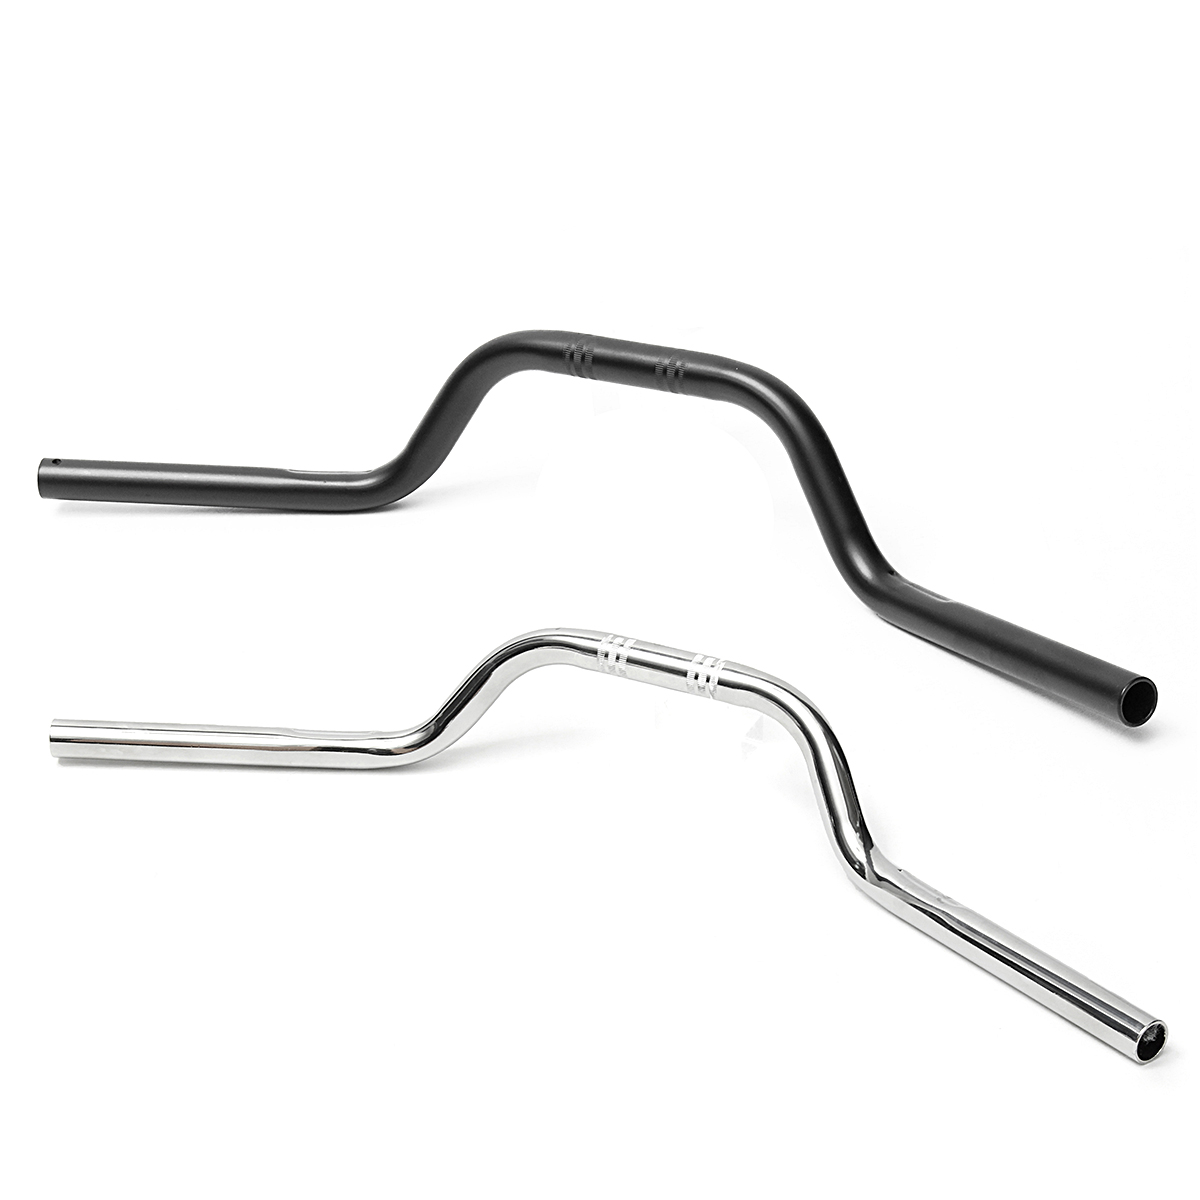 Harley T Bars 10 as well Drag Bars besides 262991315395 as well Sportster Handlebar Switches together with Ironhead. on sportster drag handlebars